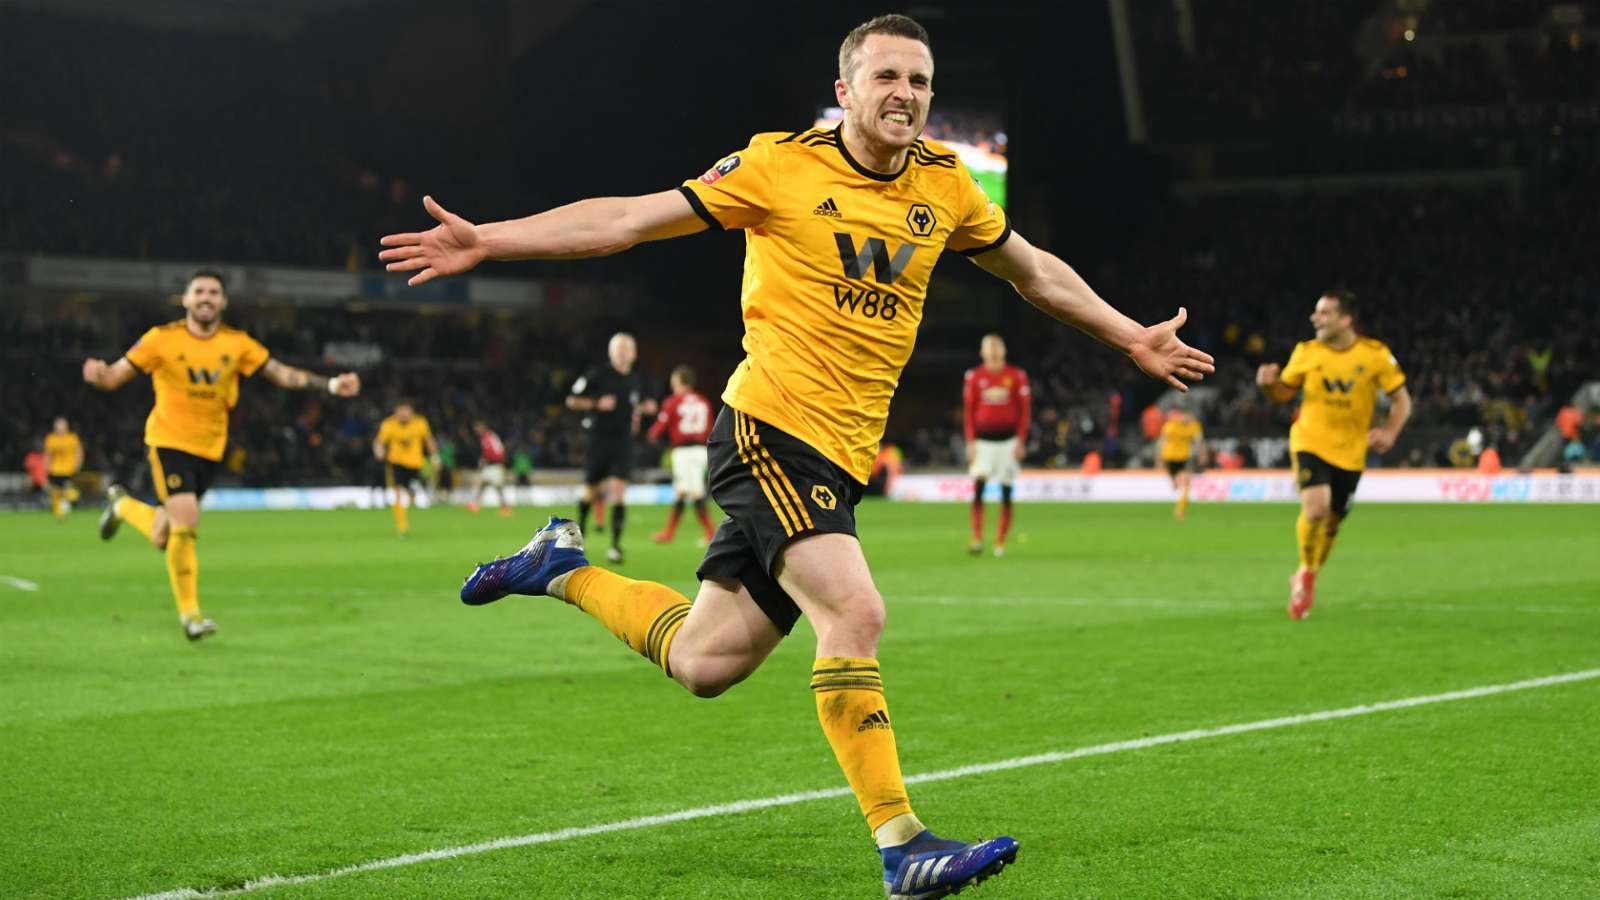 diogo jota cropped a5gupn73ymr81ojzevlj1ypub - Wolves vs Manchester United 2-1: [FA Cup Highlights] [Video]